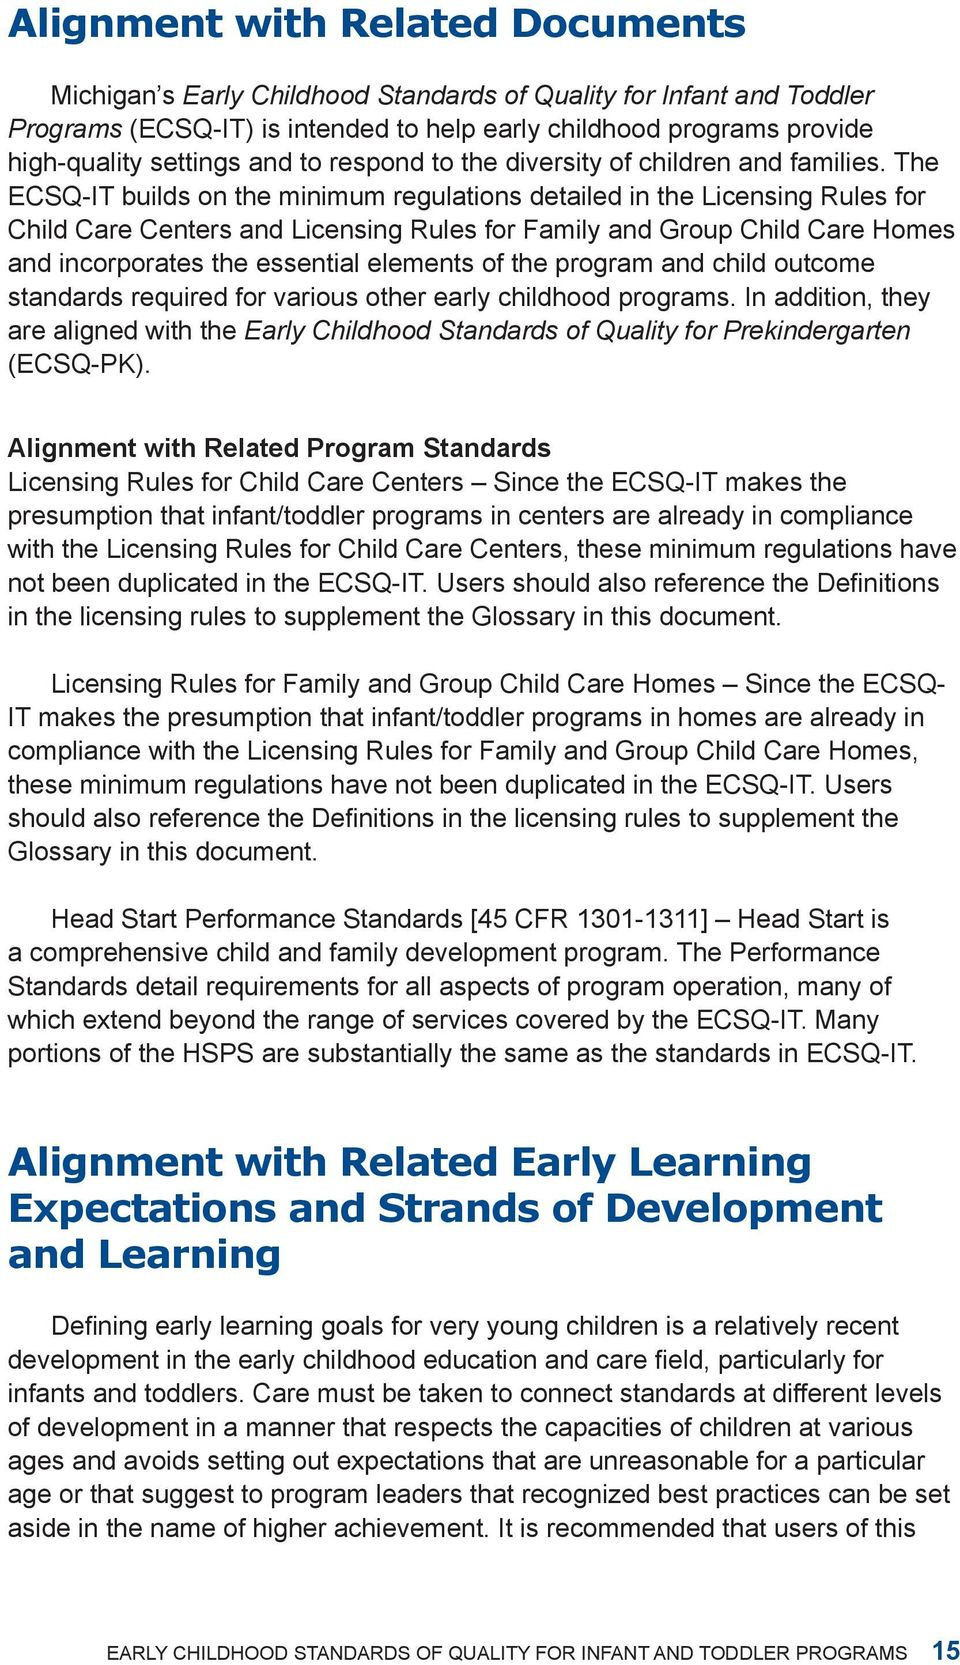 The ECSQ-IT builds on the minimum regulations detailed in the Licensing Rules for Child Care Centers and Licensing Rules for Family and Group Child Care Homes and incorporates the essential elements